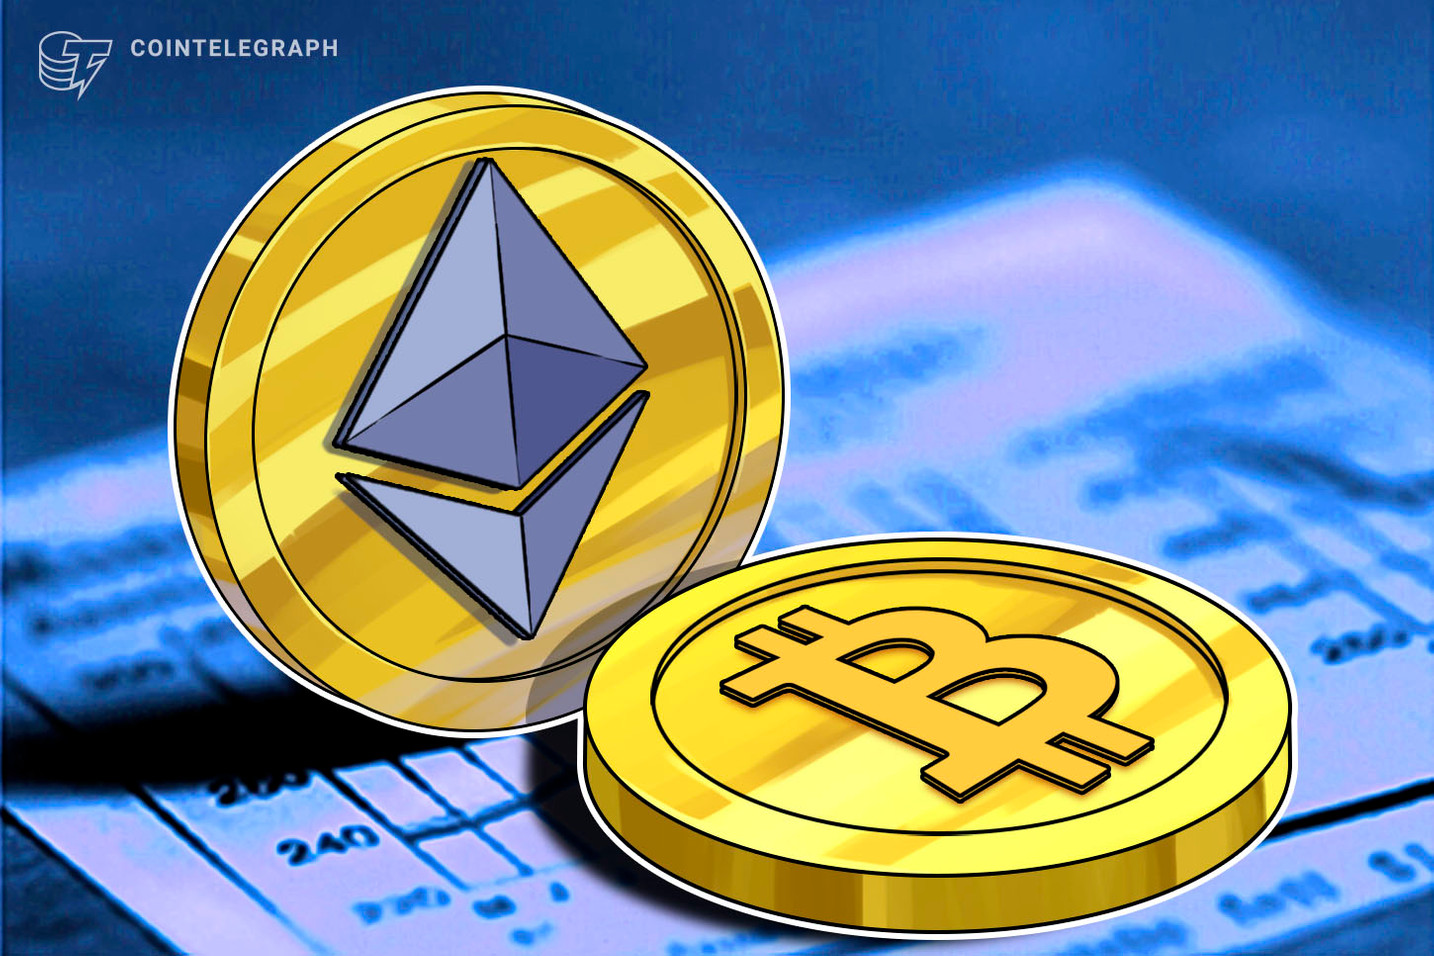 Send on Bitcoin, Receive on Ethereum: Atomic Loans Launches Bitcoin DeFi Solution